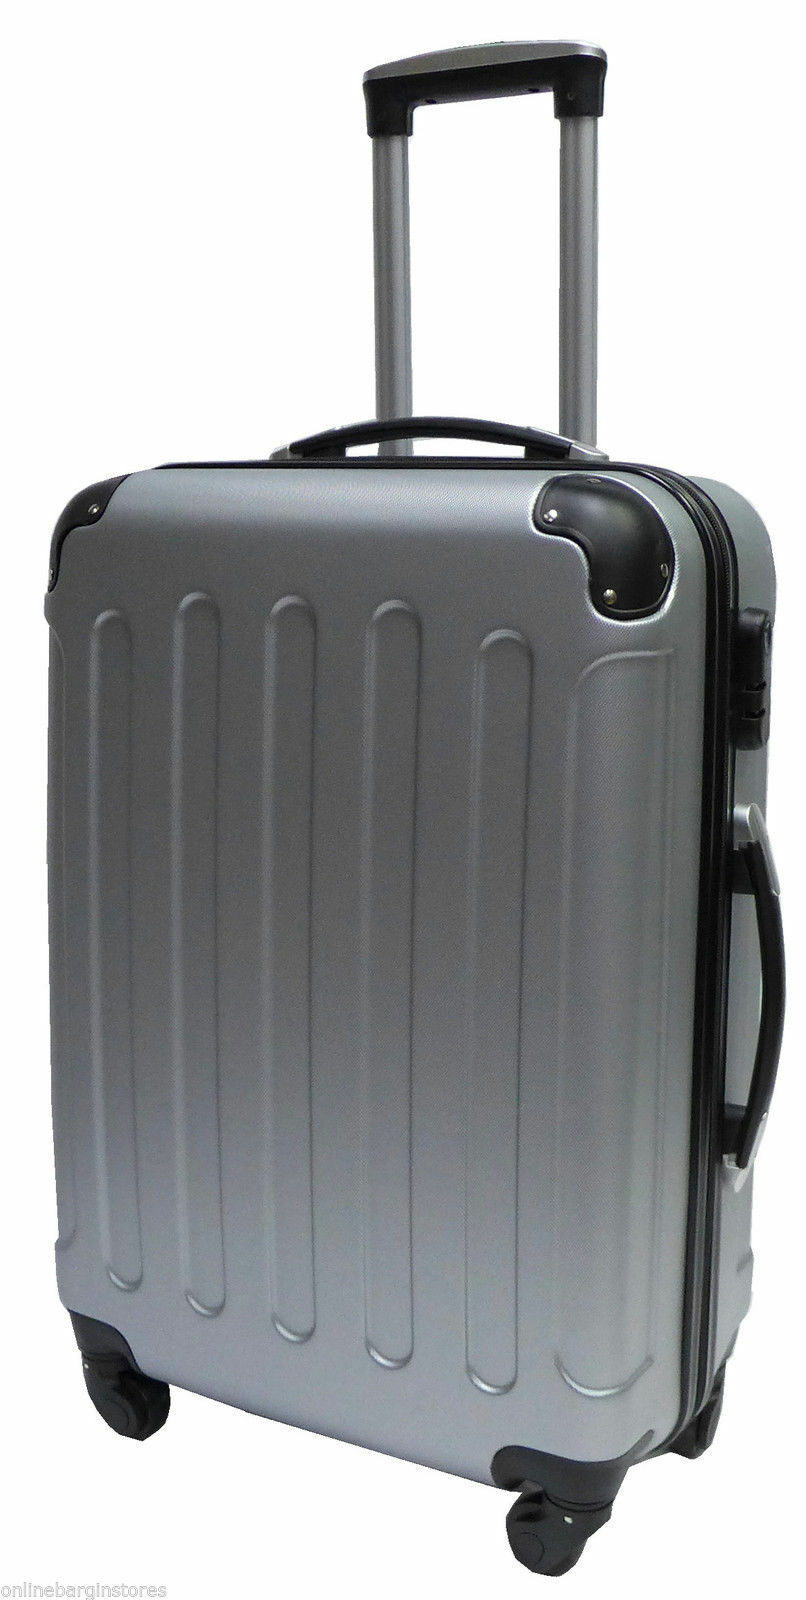 silver hard shell suitcase 4 wheel spinner luggage trolley. Black Bedroom Furniture Sets. Home Design Ideas